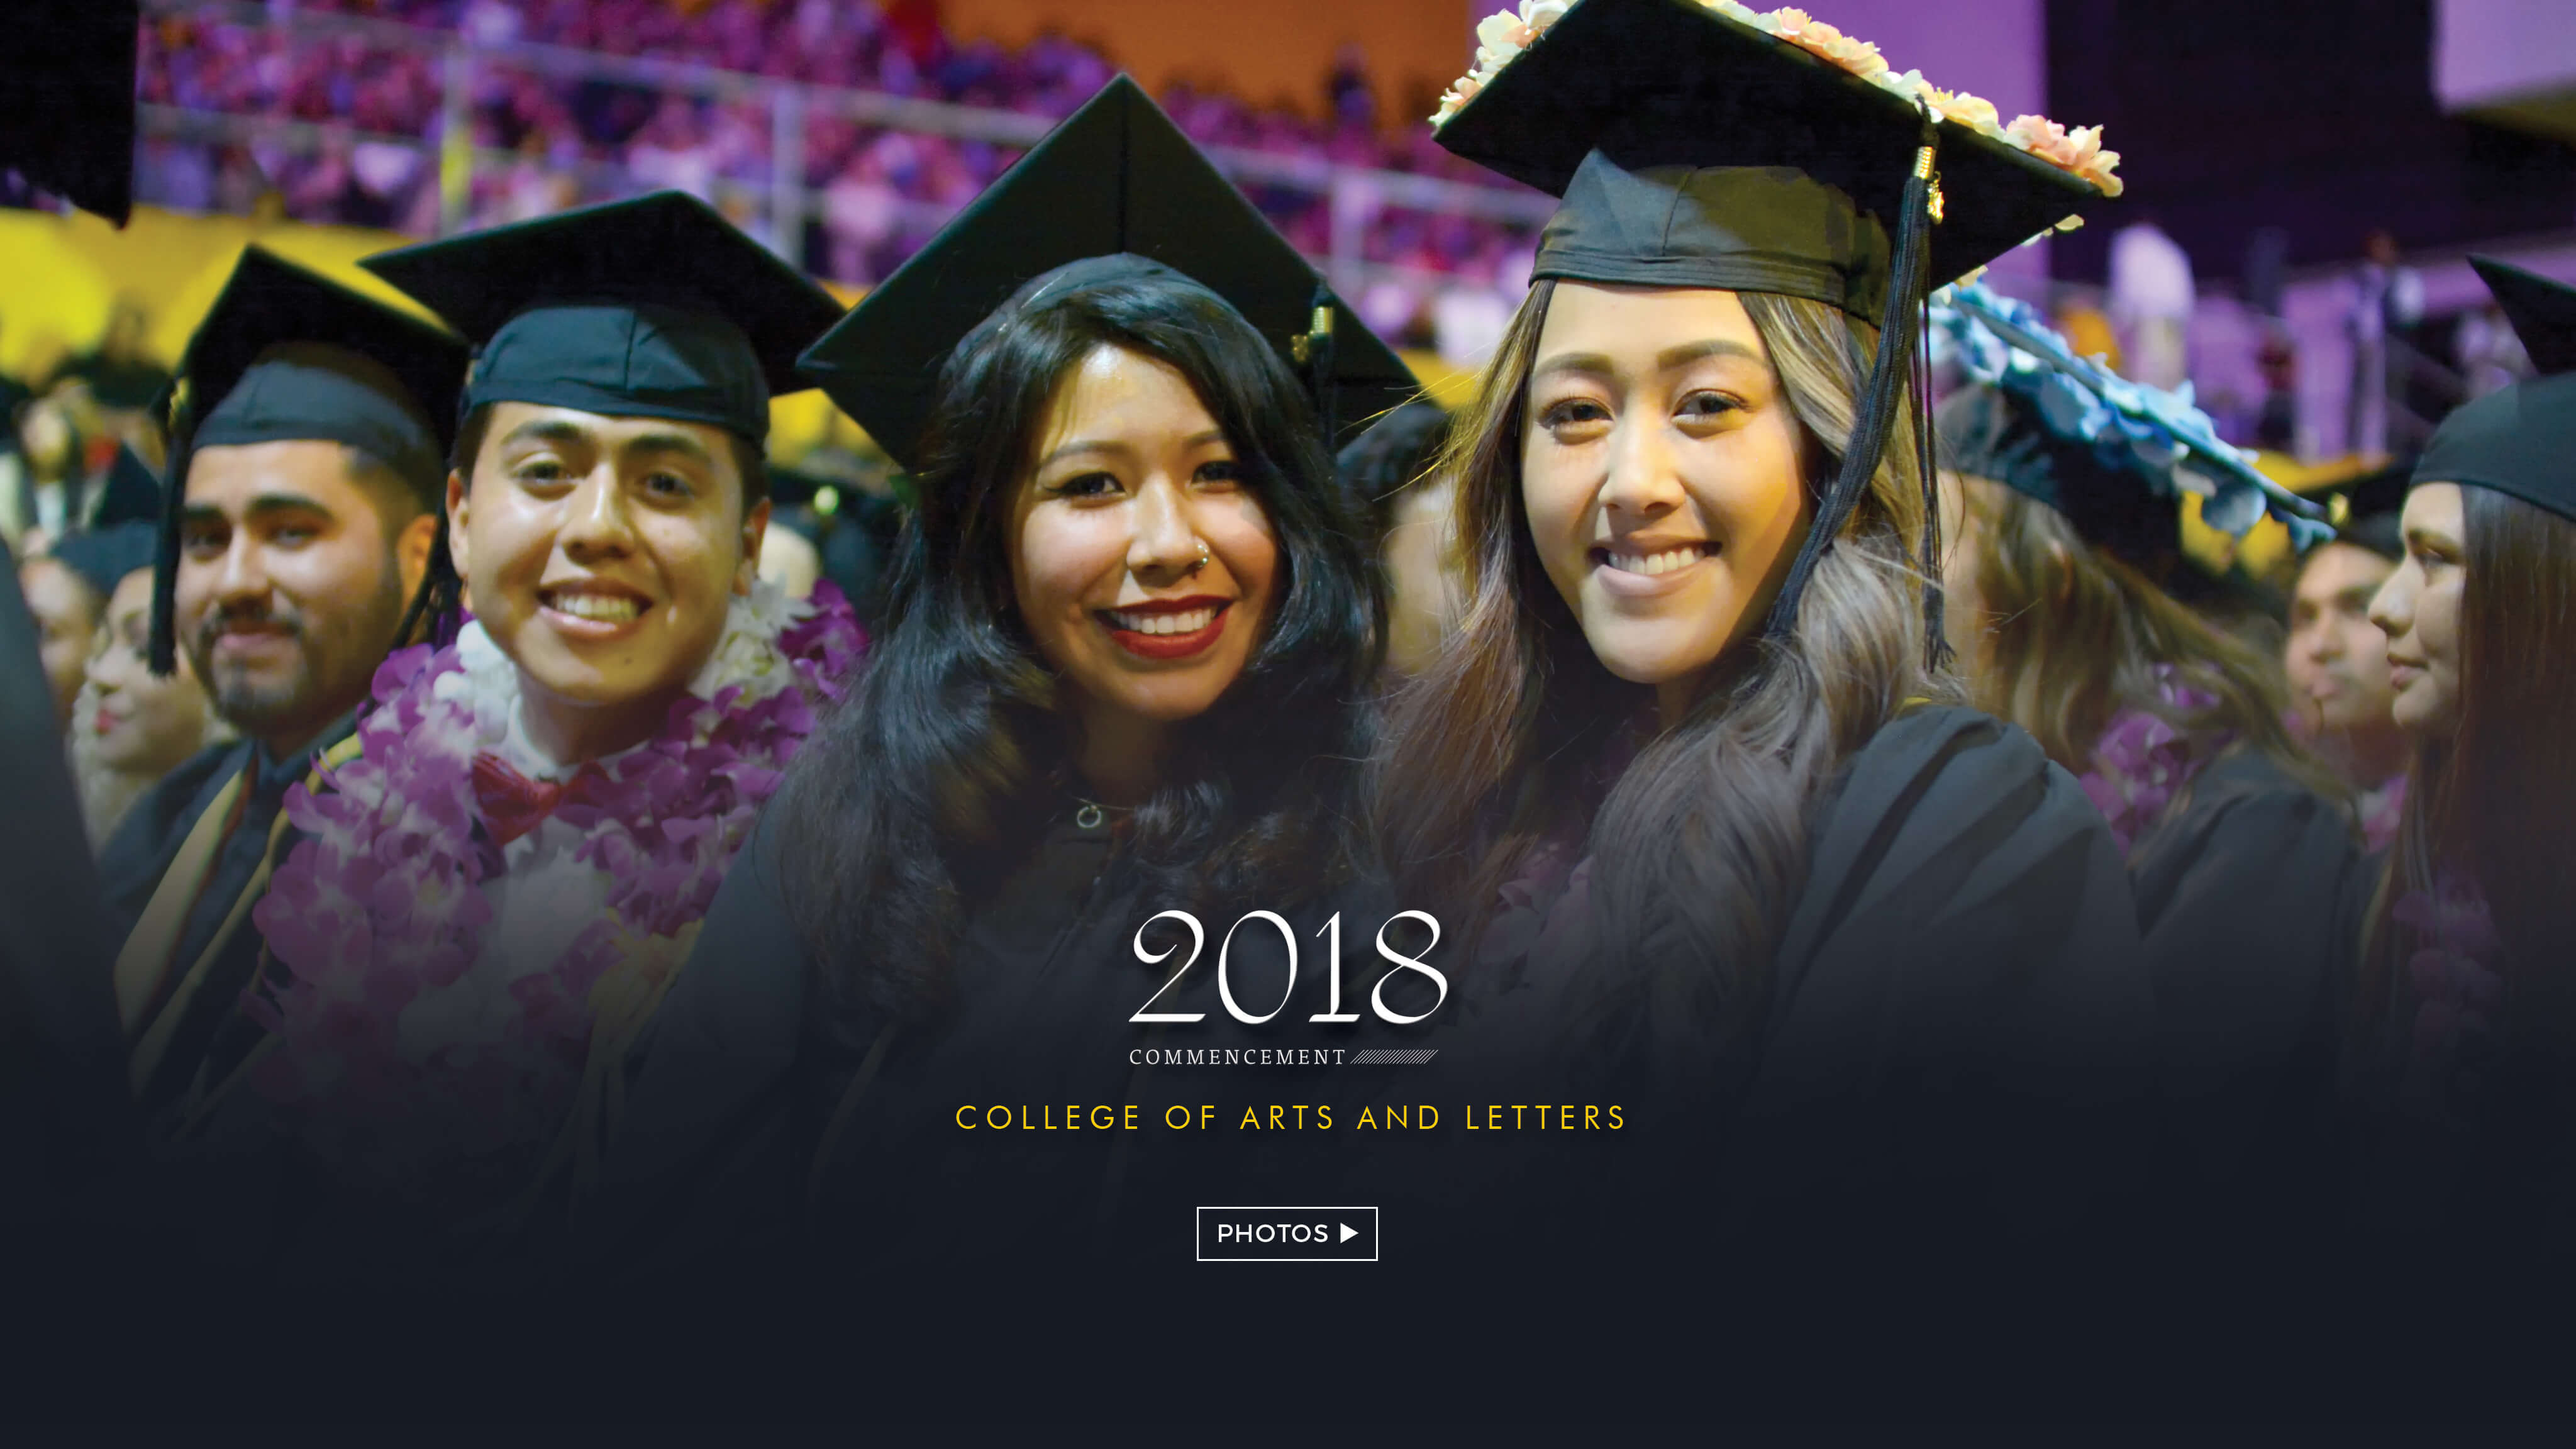 College of Arts and Letters photo album